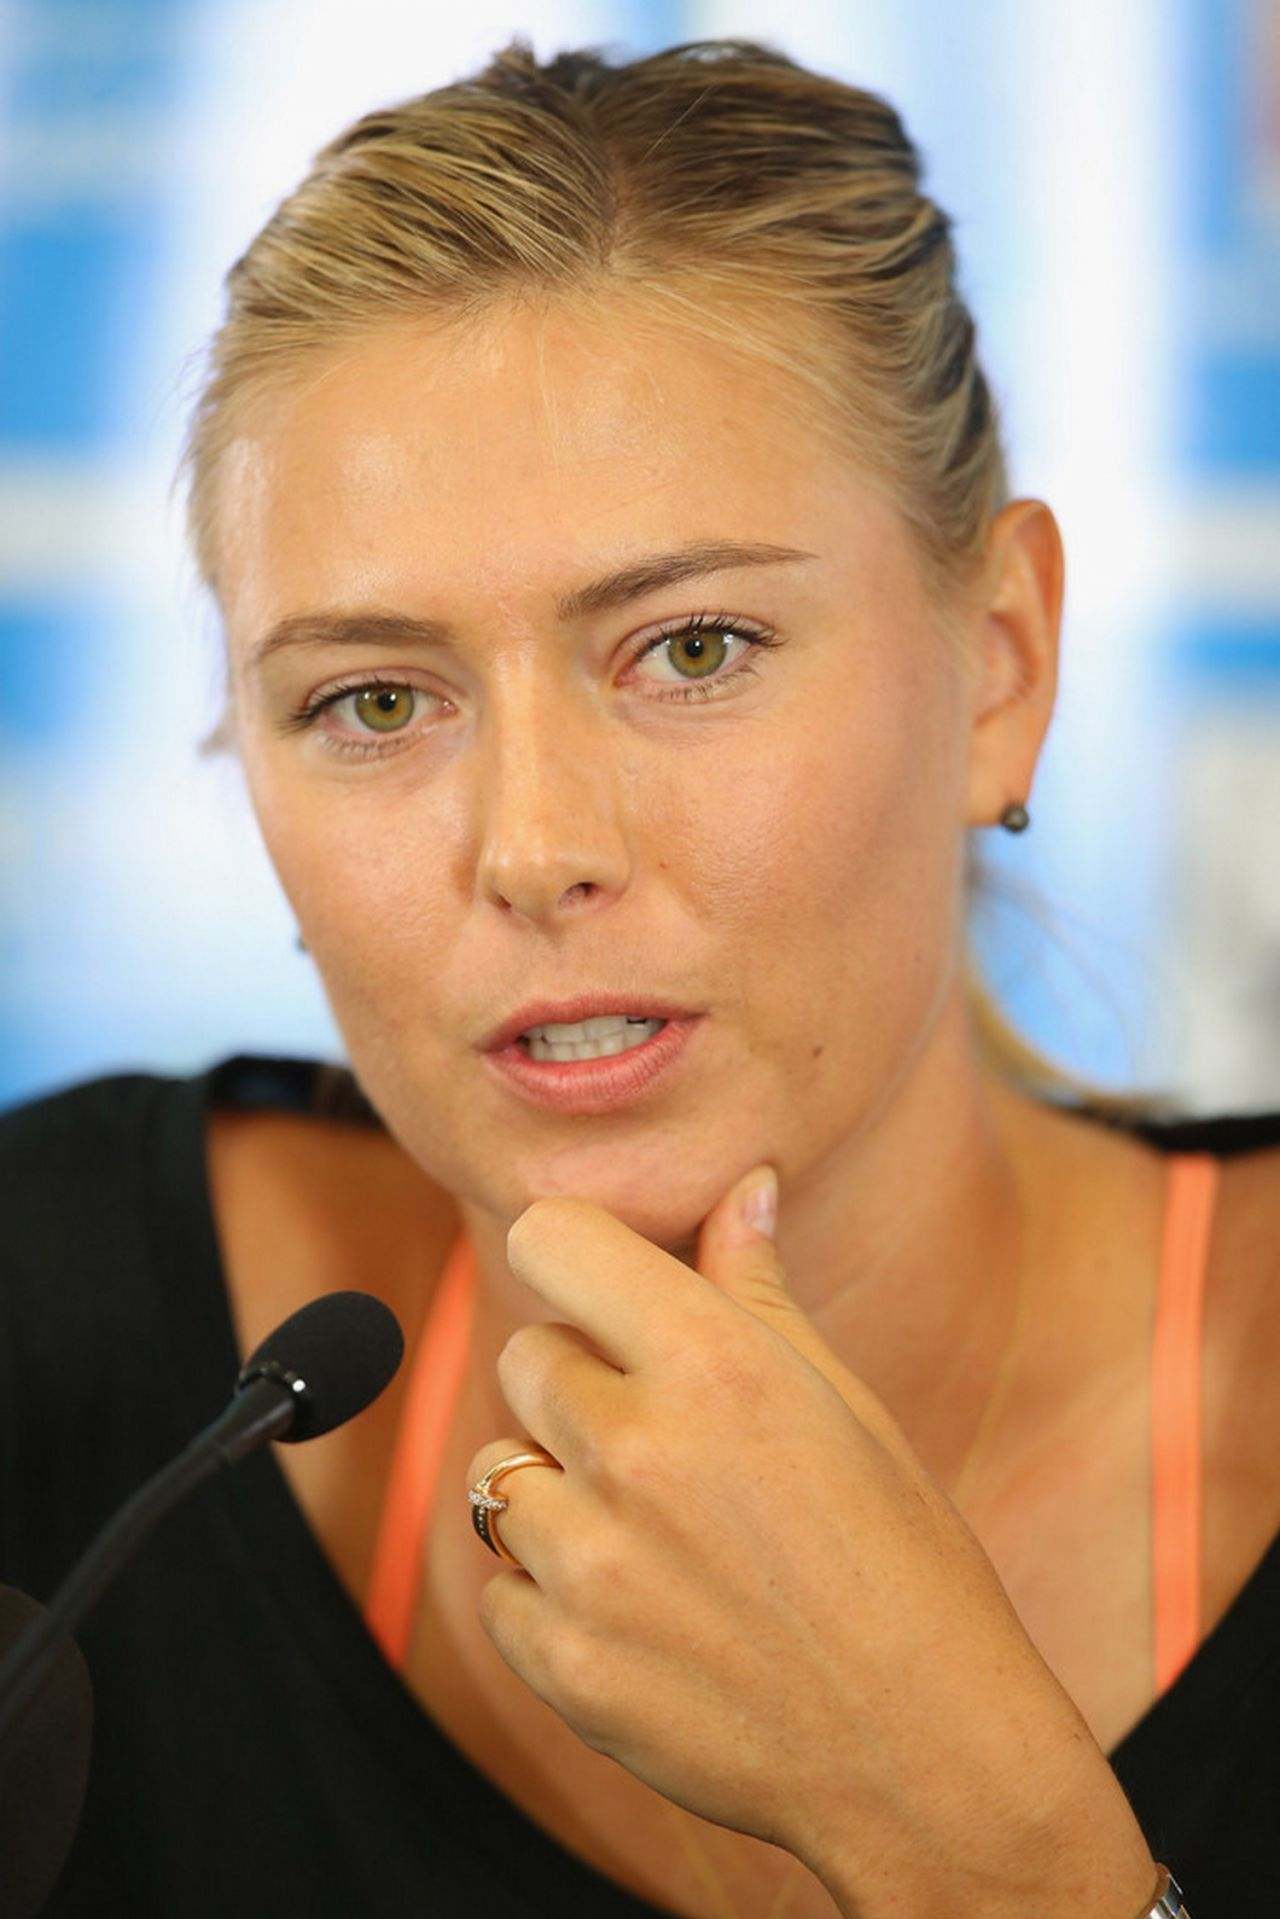 Maria Sharapova - 2014 Brisbane International Press Conference, December 2013